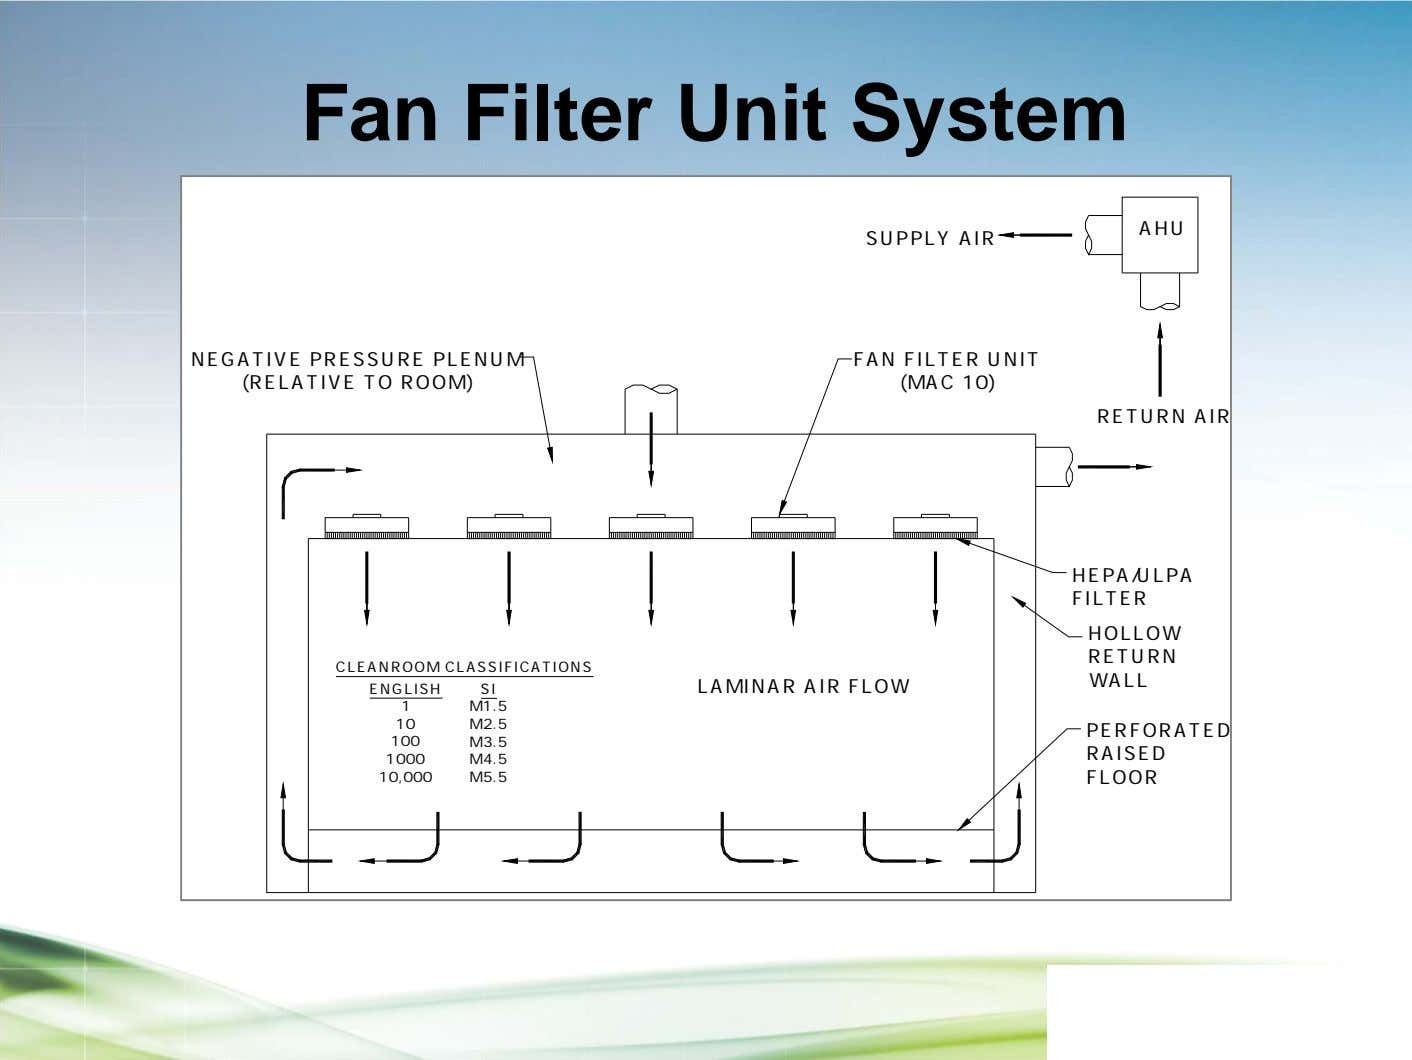 Fan Filter Unit System AHU SUPPLY AIR NEGATIVE PRESSURE PLENUM (RELATIVE TO ROOM) FAN FILTER